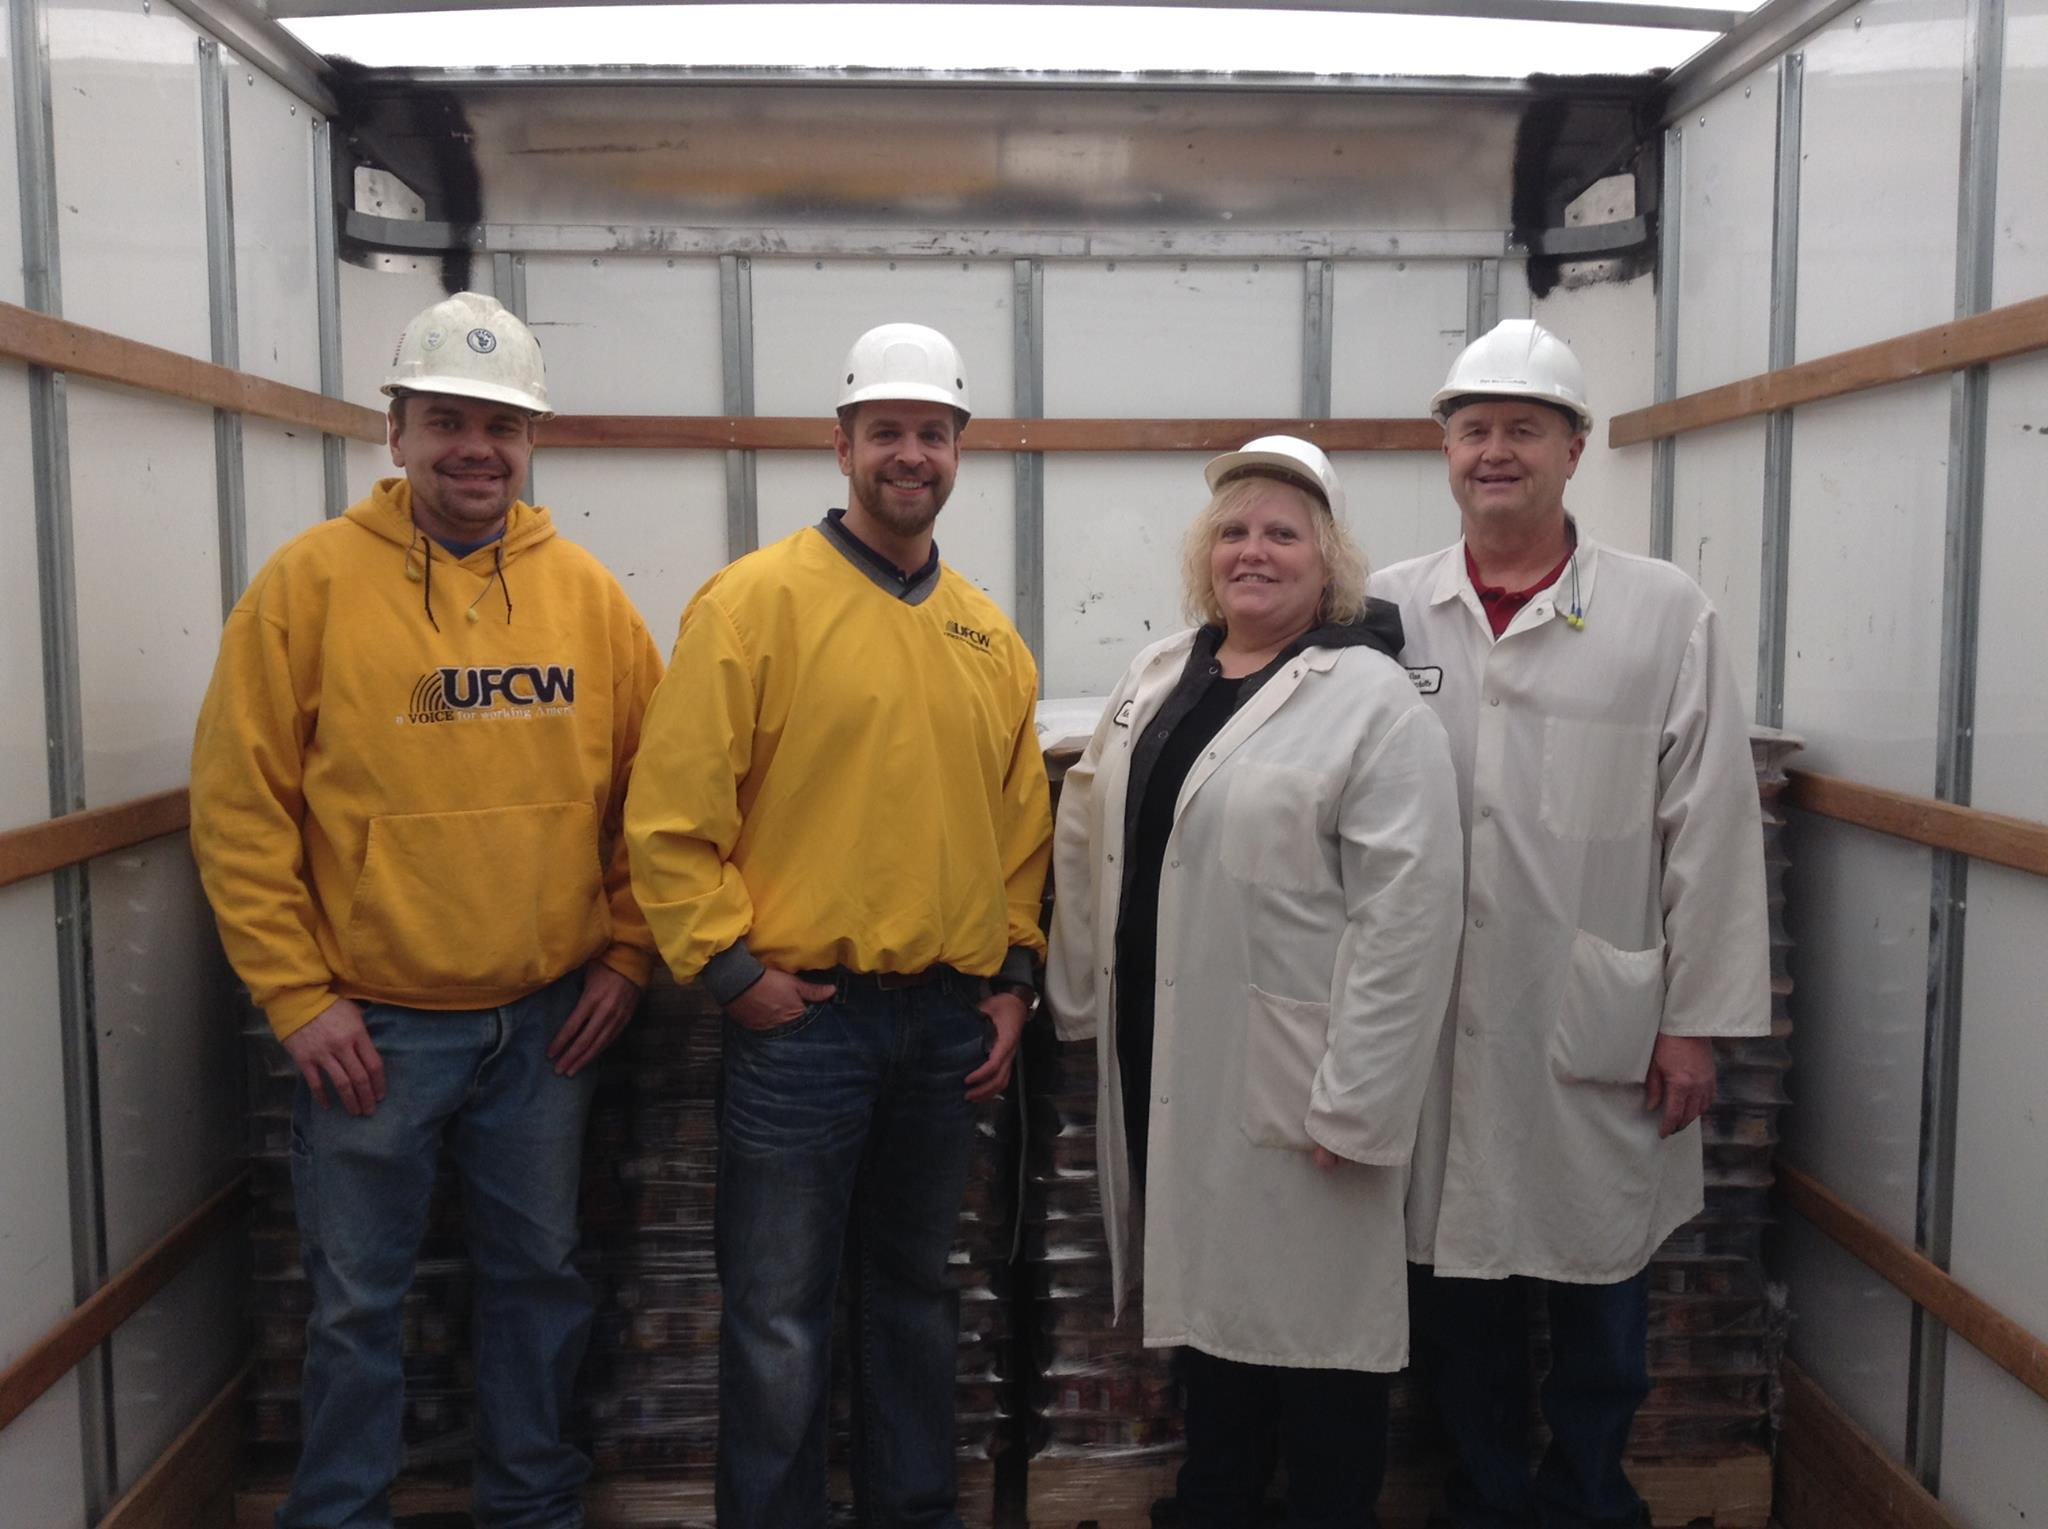 Members of Local 617 who proudly process the products made at the Fort Madison Iowa Plant